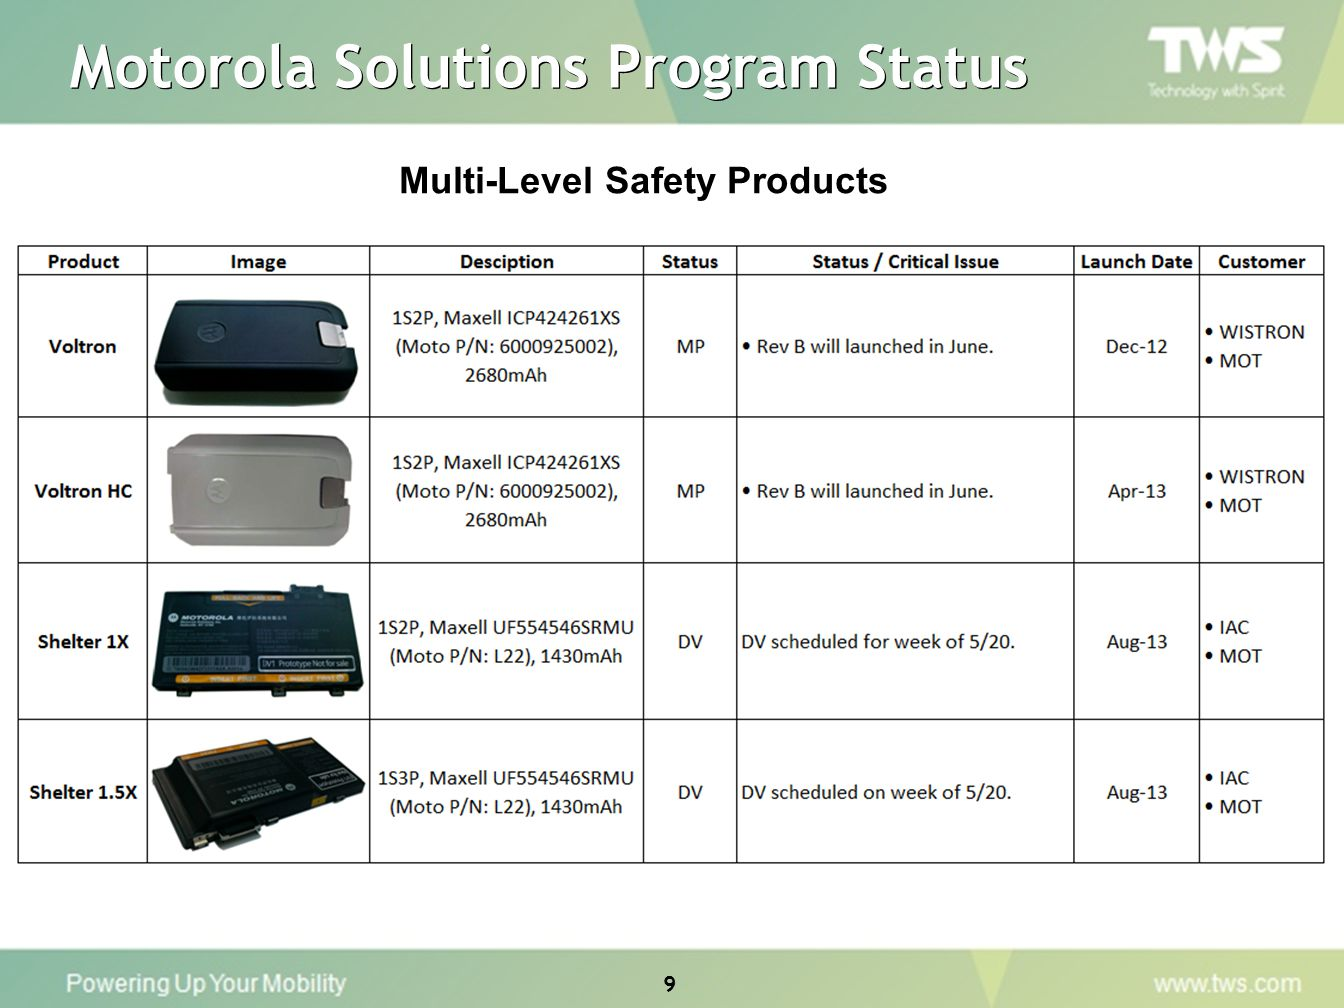 9 Multi-Level Safety Products Motorola Solutions Program Status